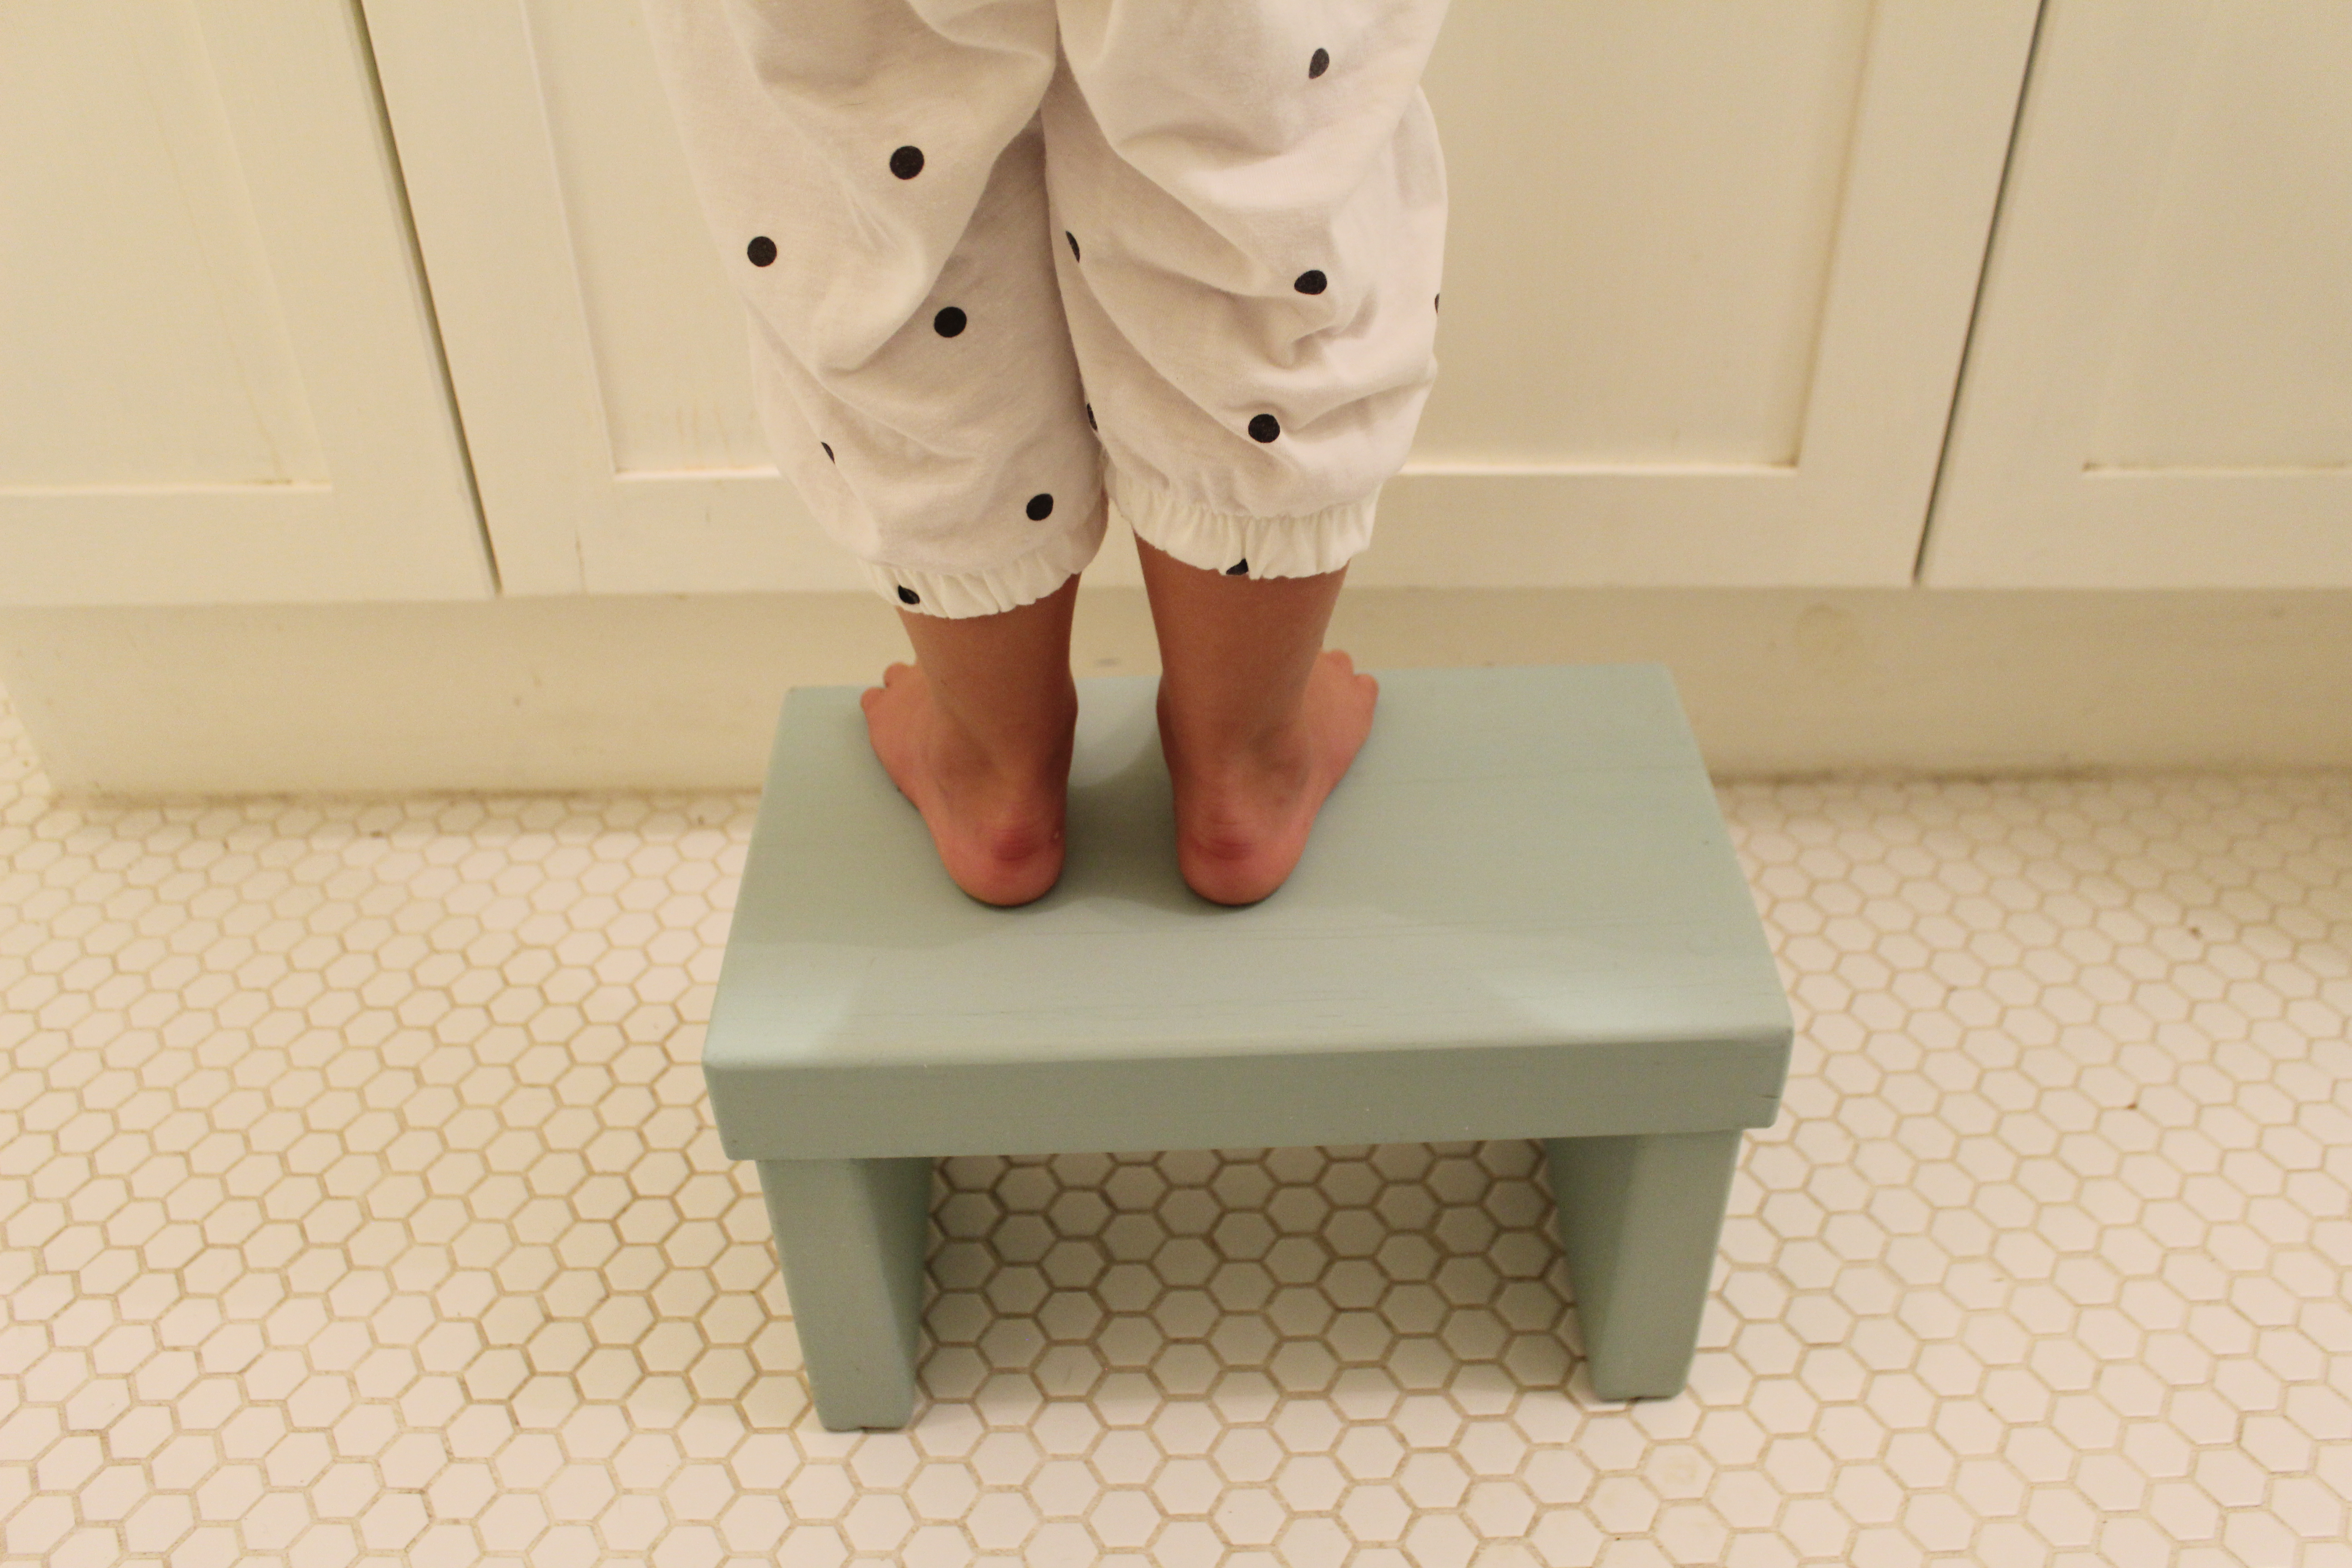 The Nice Bench helps kids reach in the bathroom